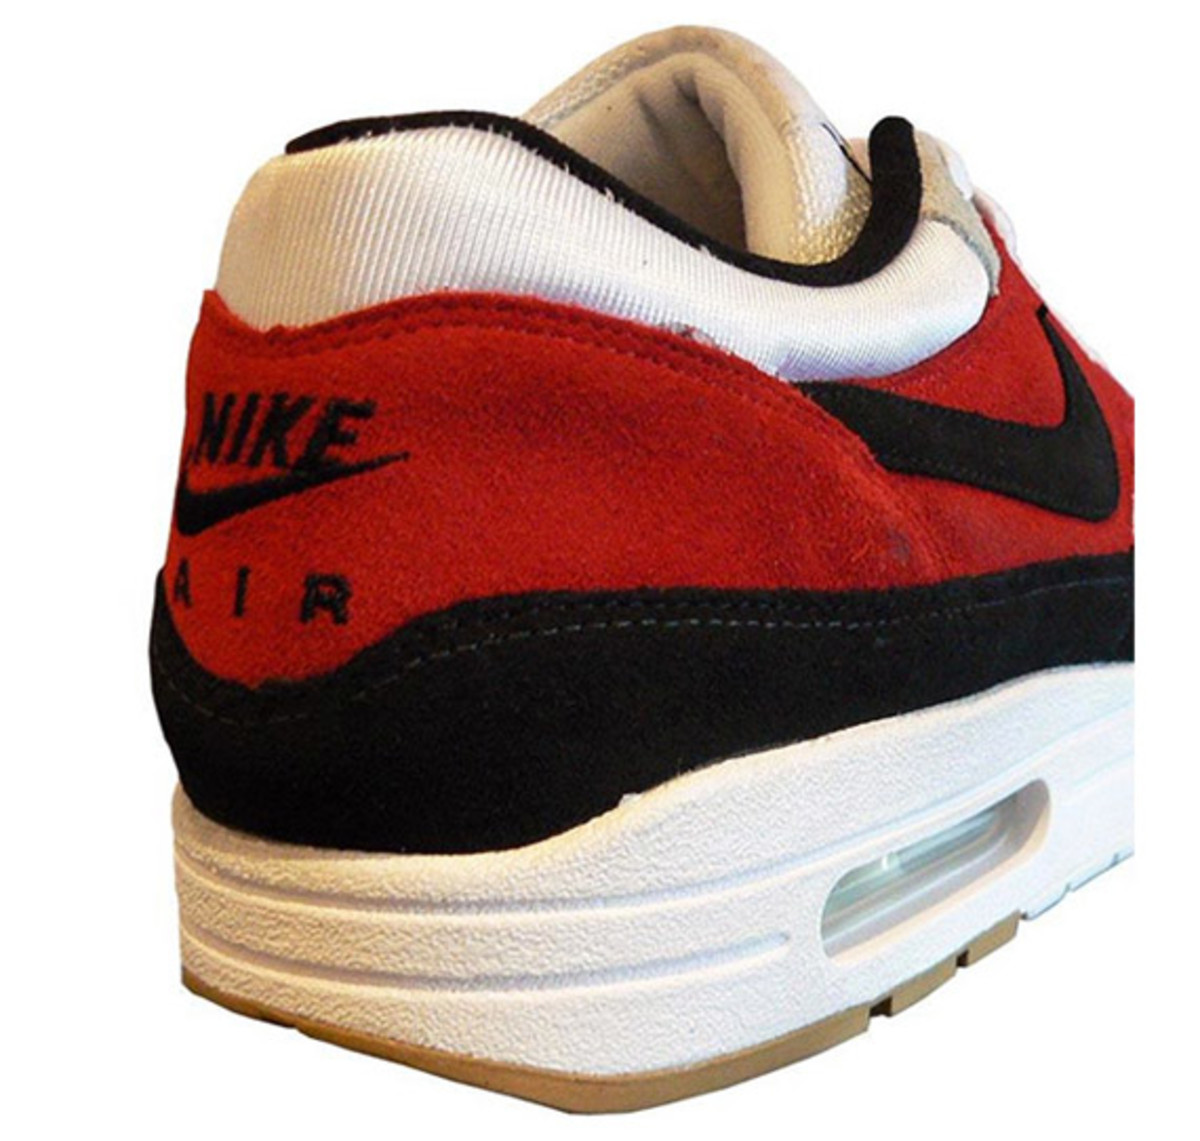 nike_airmax_1_red_white_black_2